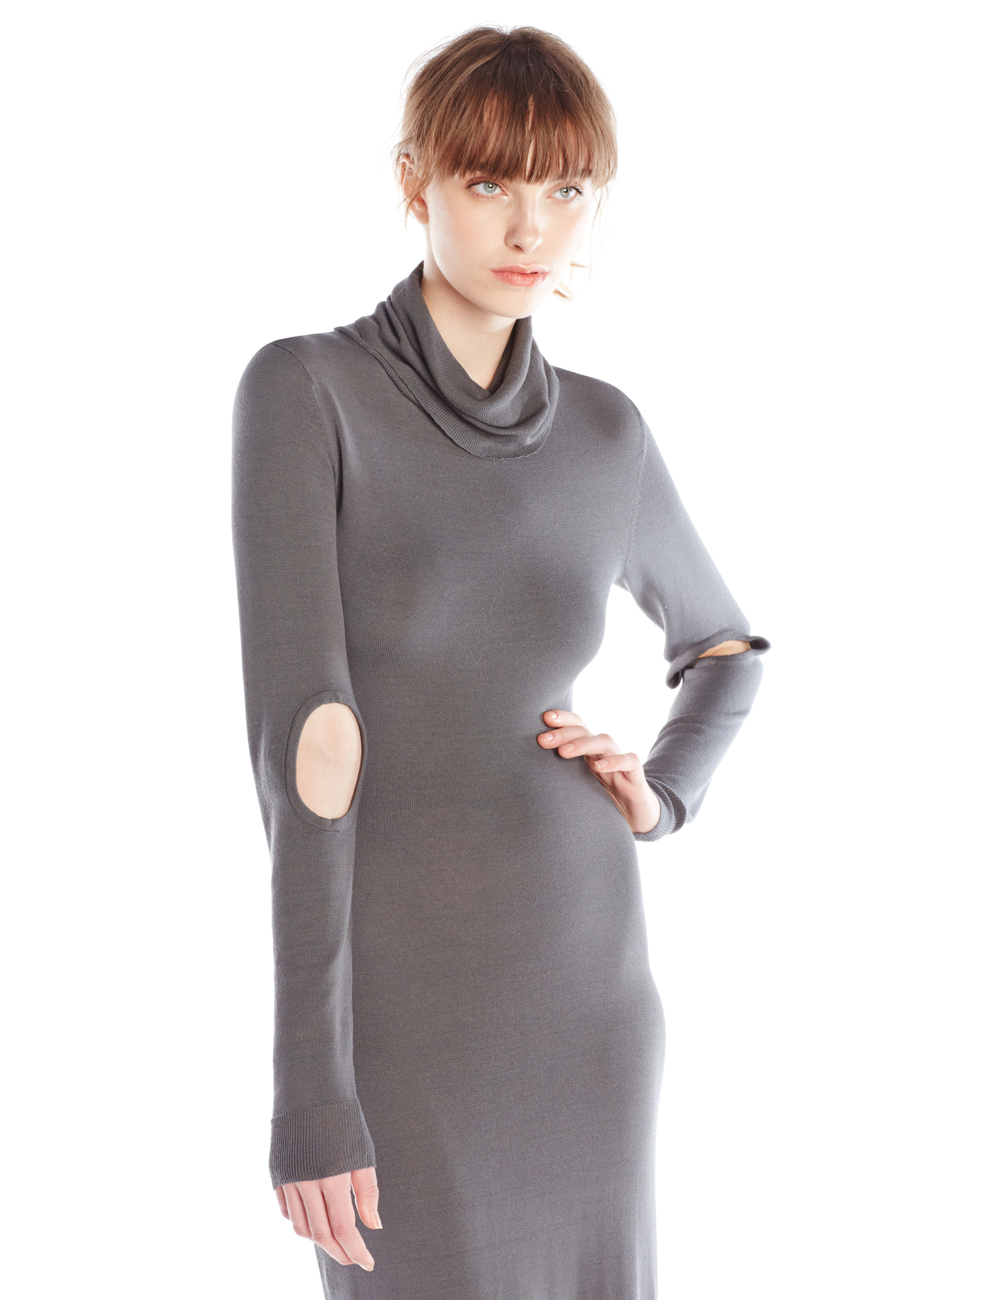 IV Turtleneck Knit Dress.0044.jpg